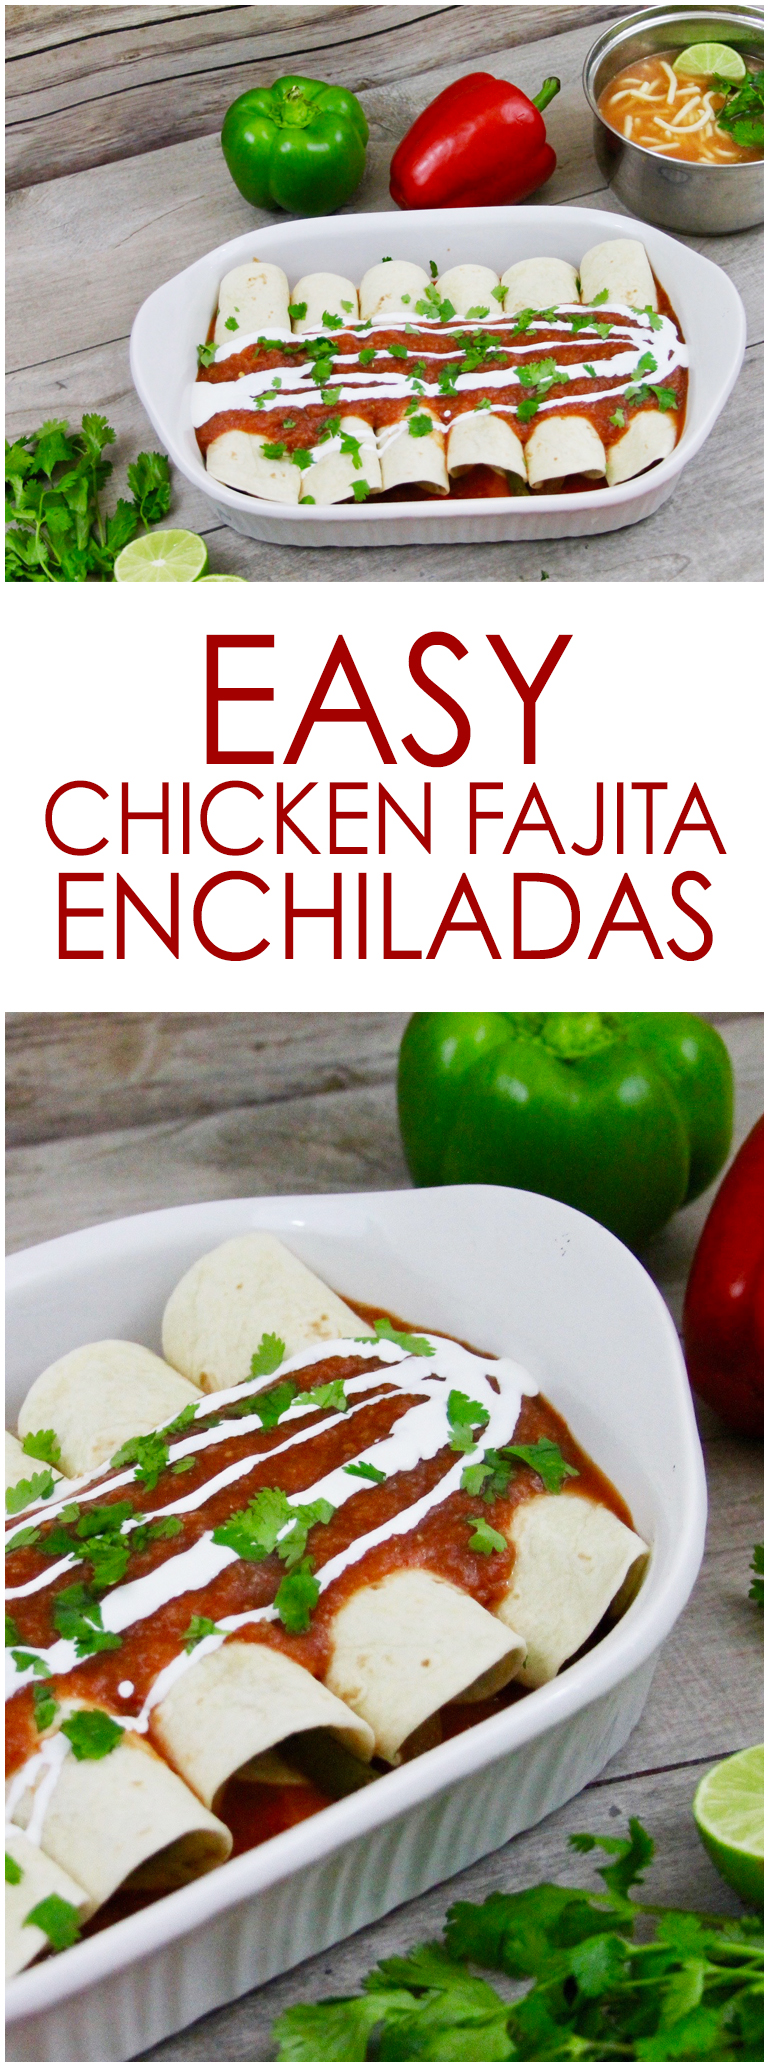 easy chicken fajita enchiladas